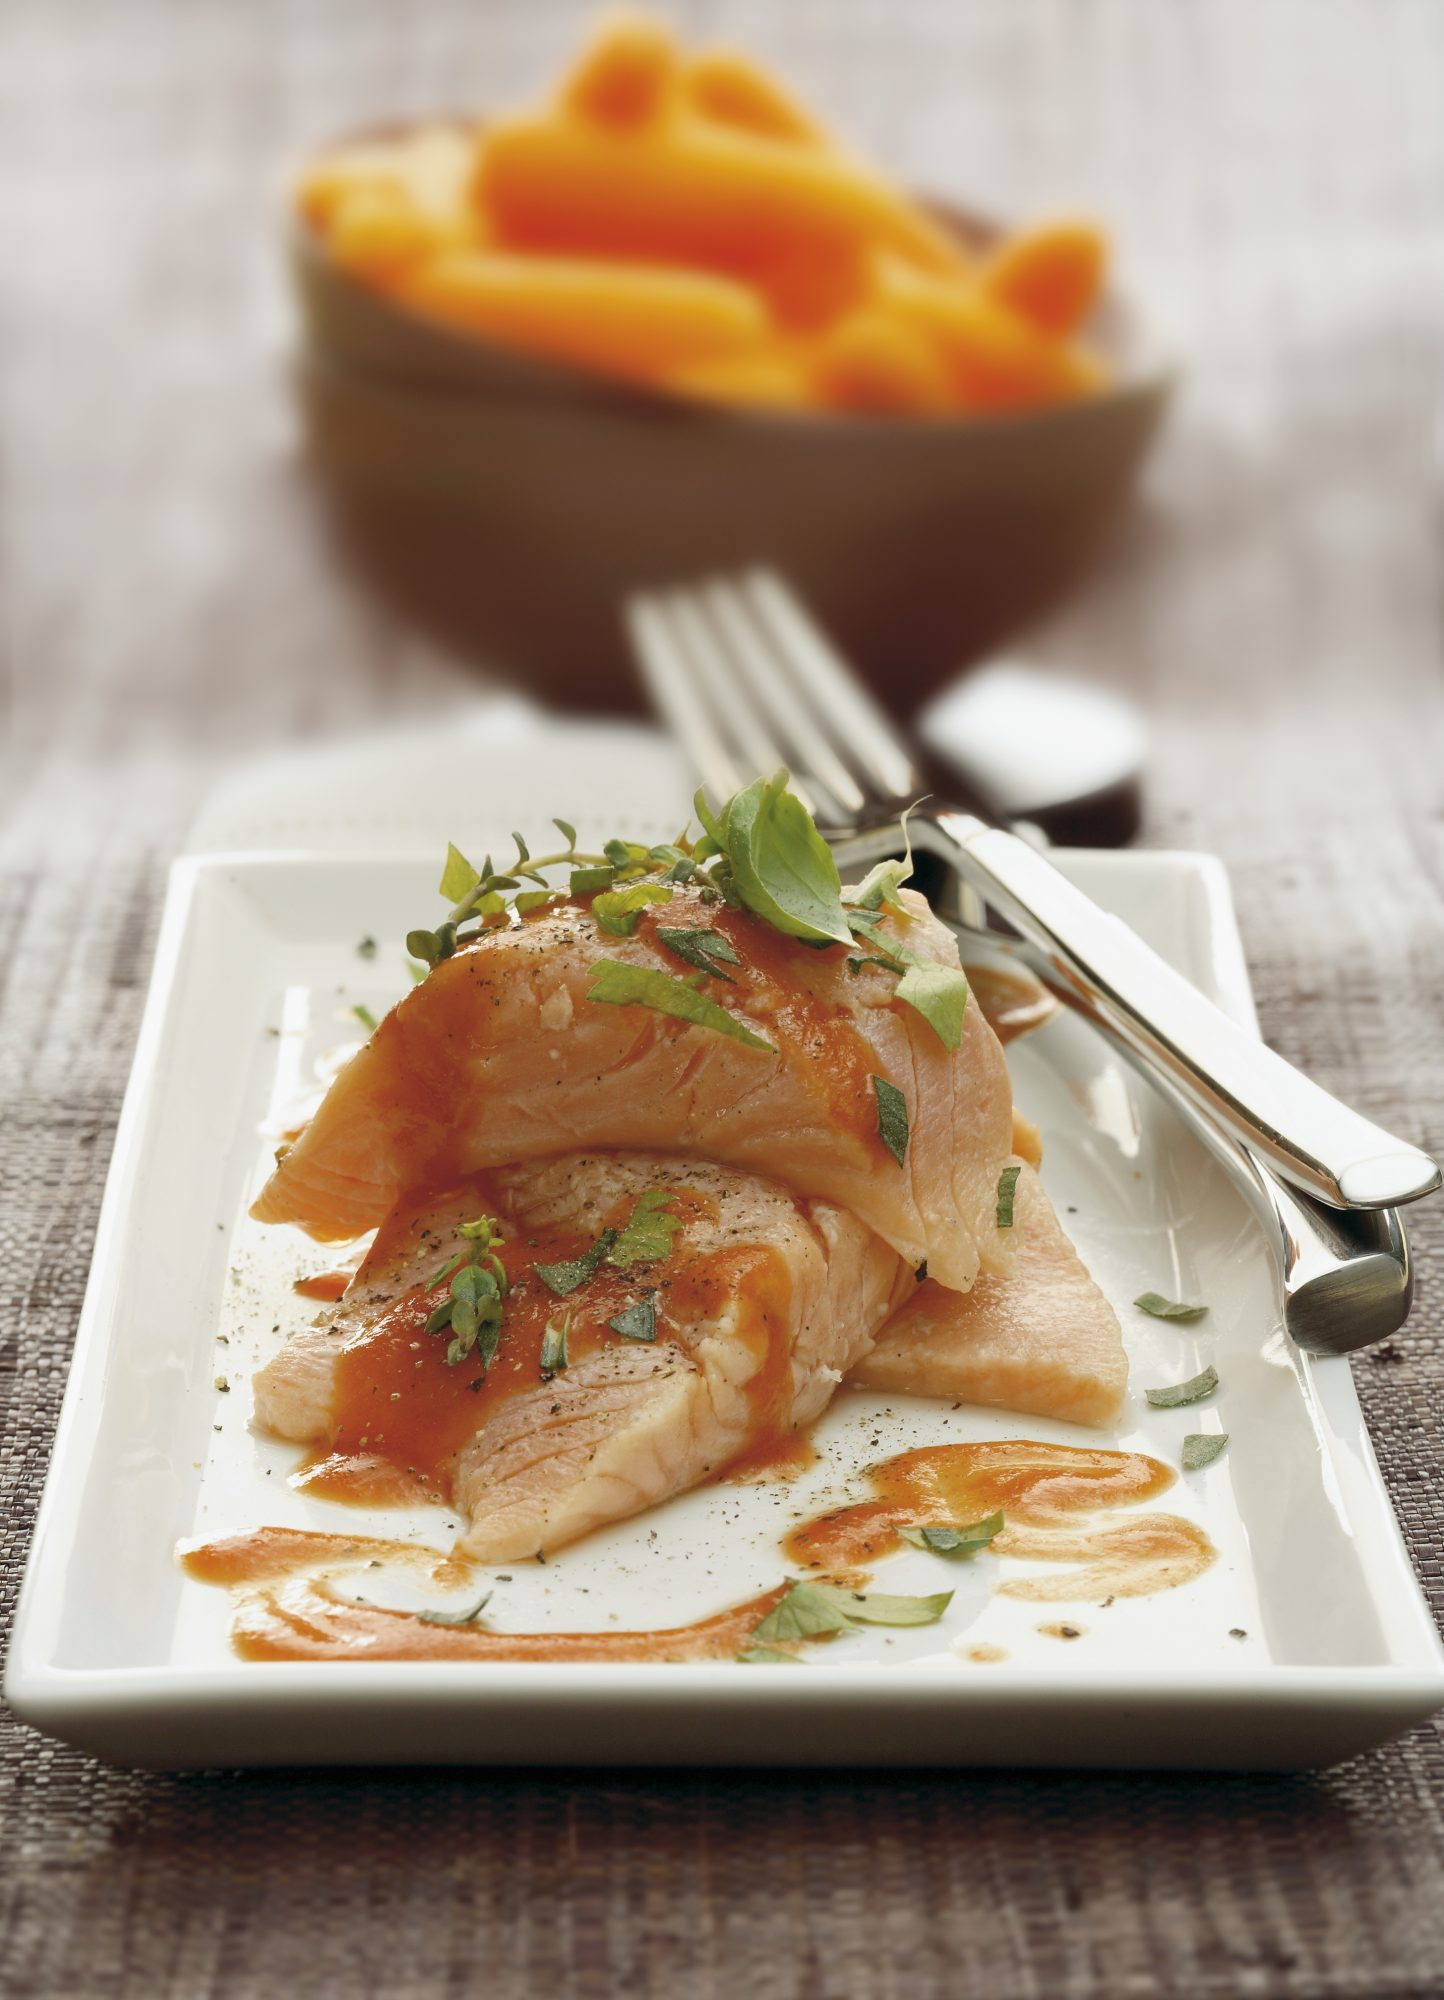 Fillets of aromatic salmon trout